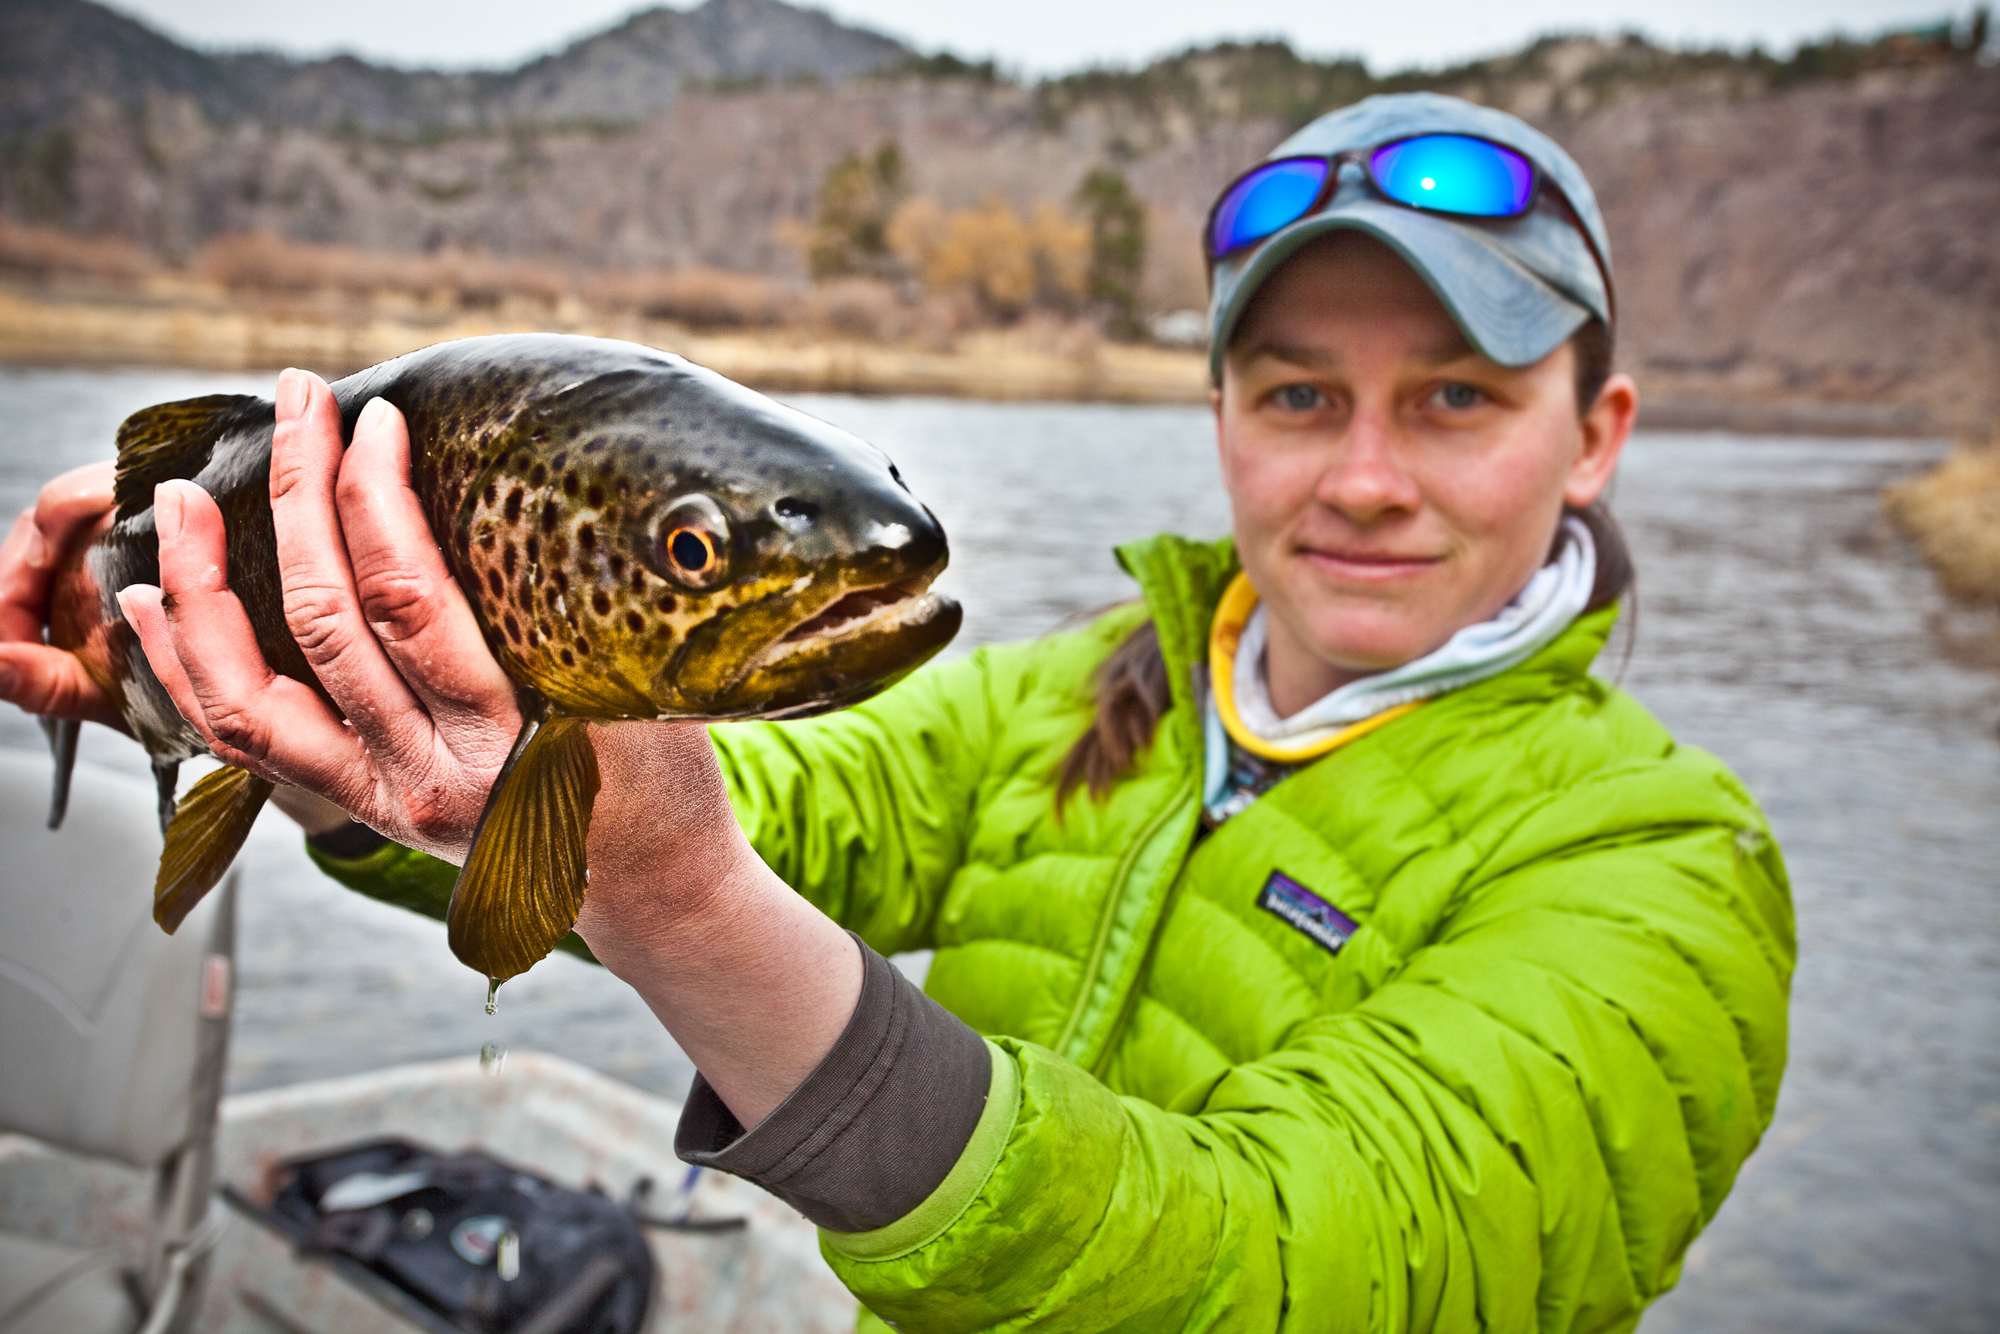 Meet my new friend, Doc Brown. Sara Roholt shows off the fruits of a chilly spring day on the river.